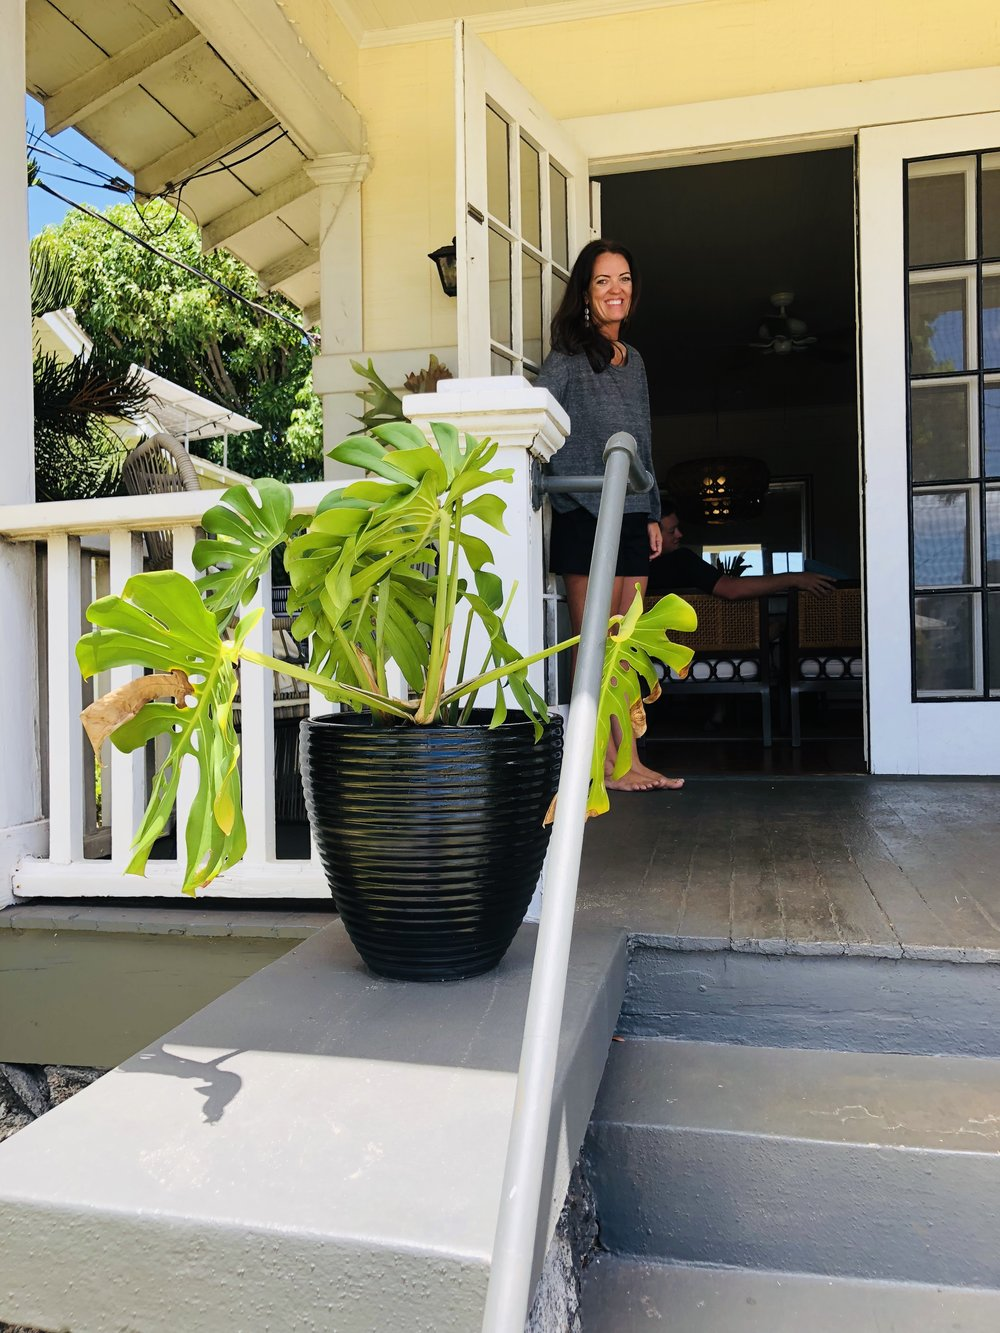 This entry way screams, ALOHA! 🌺  If you choose to have plants as a welcoming invitation into your home or space, ensure that they reflect the mana that you personally show them on a daily basis. Plants thrive off of just the right balance of love, water, and sunshine. When we Malama (care for) our environments, they too return the favor and care for us! - #greenislife